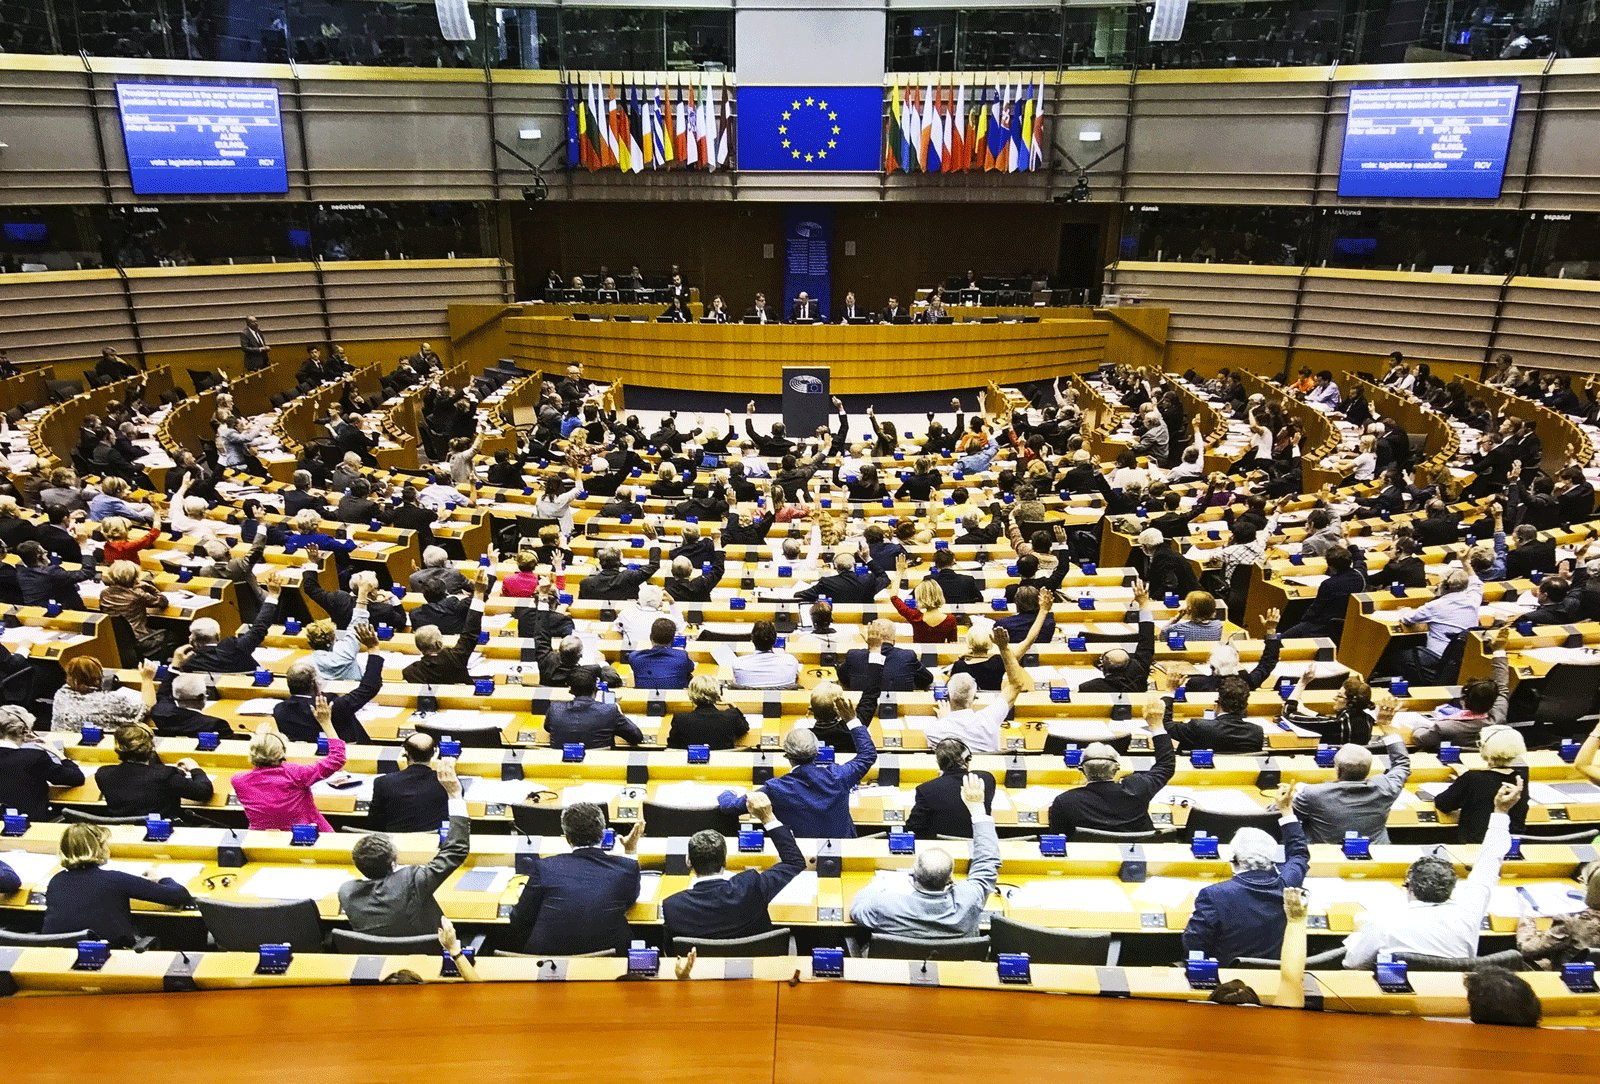 How to attend session of the European Parliament in Brussels